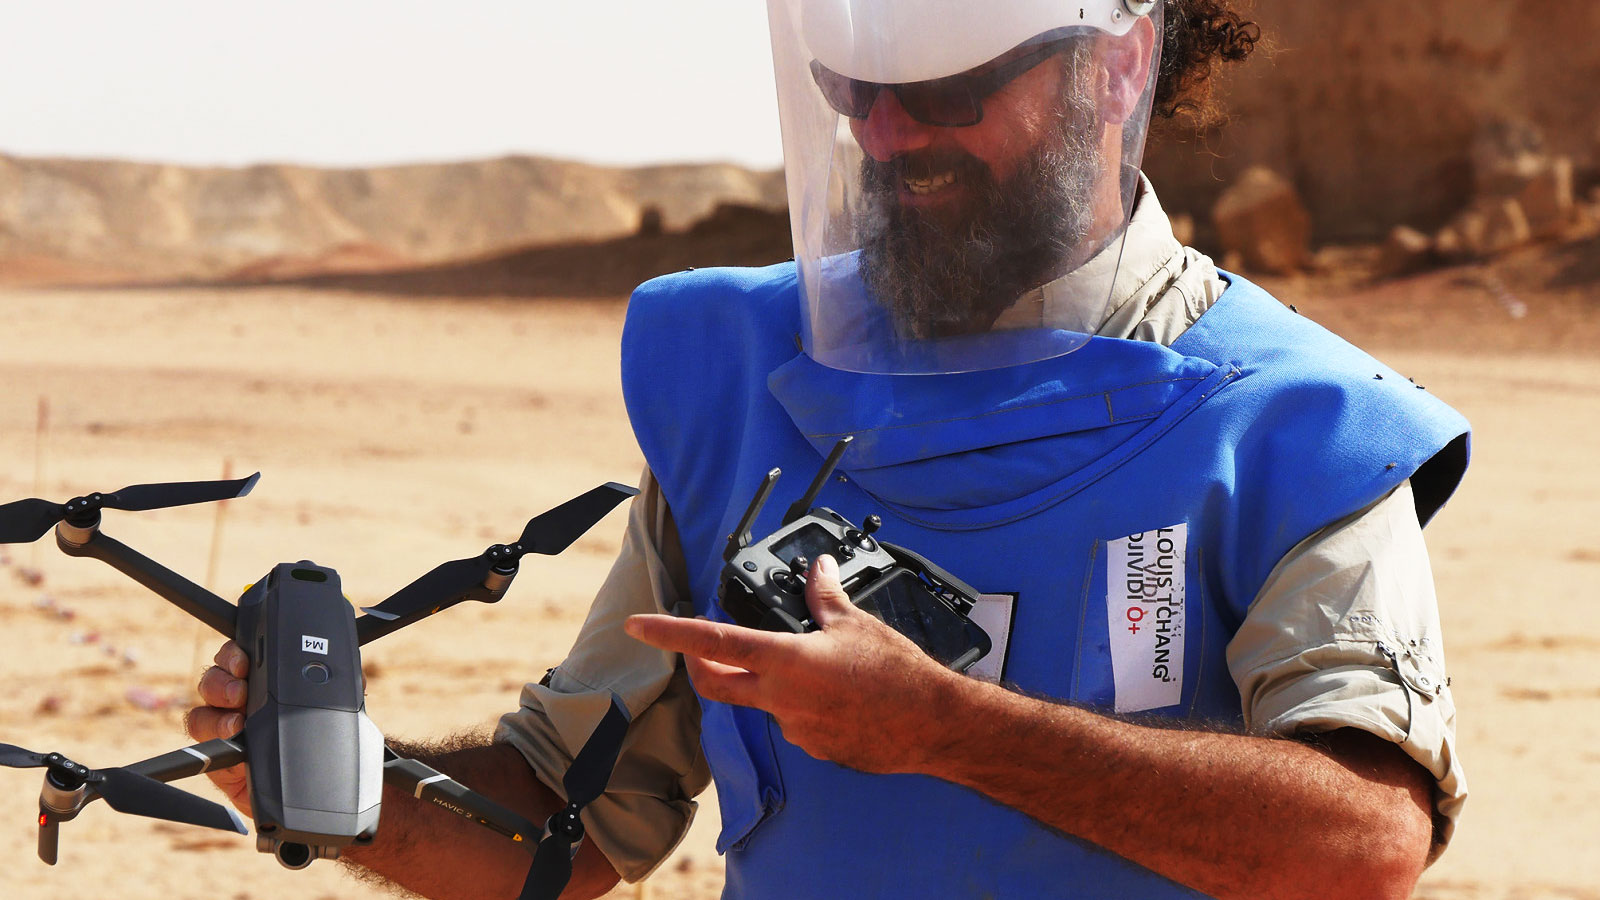 Chad | Detecting landmines with drones